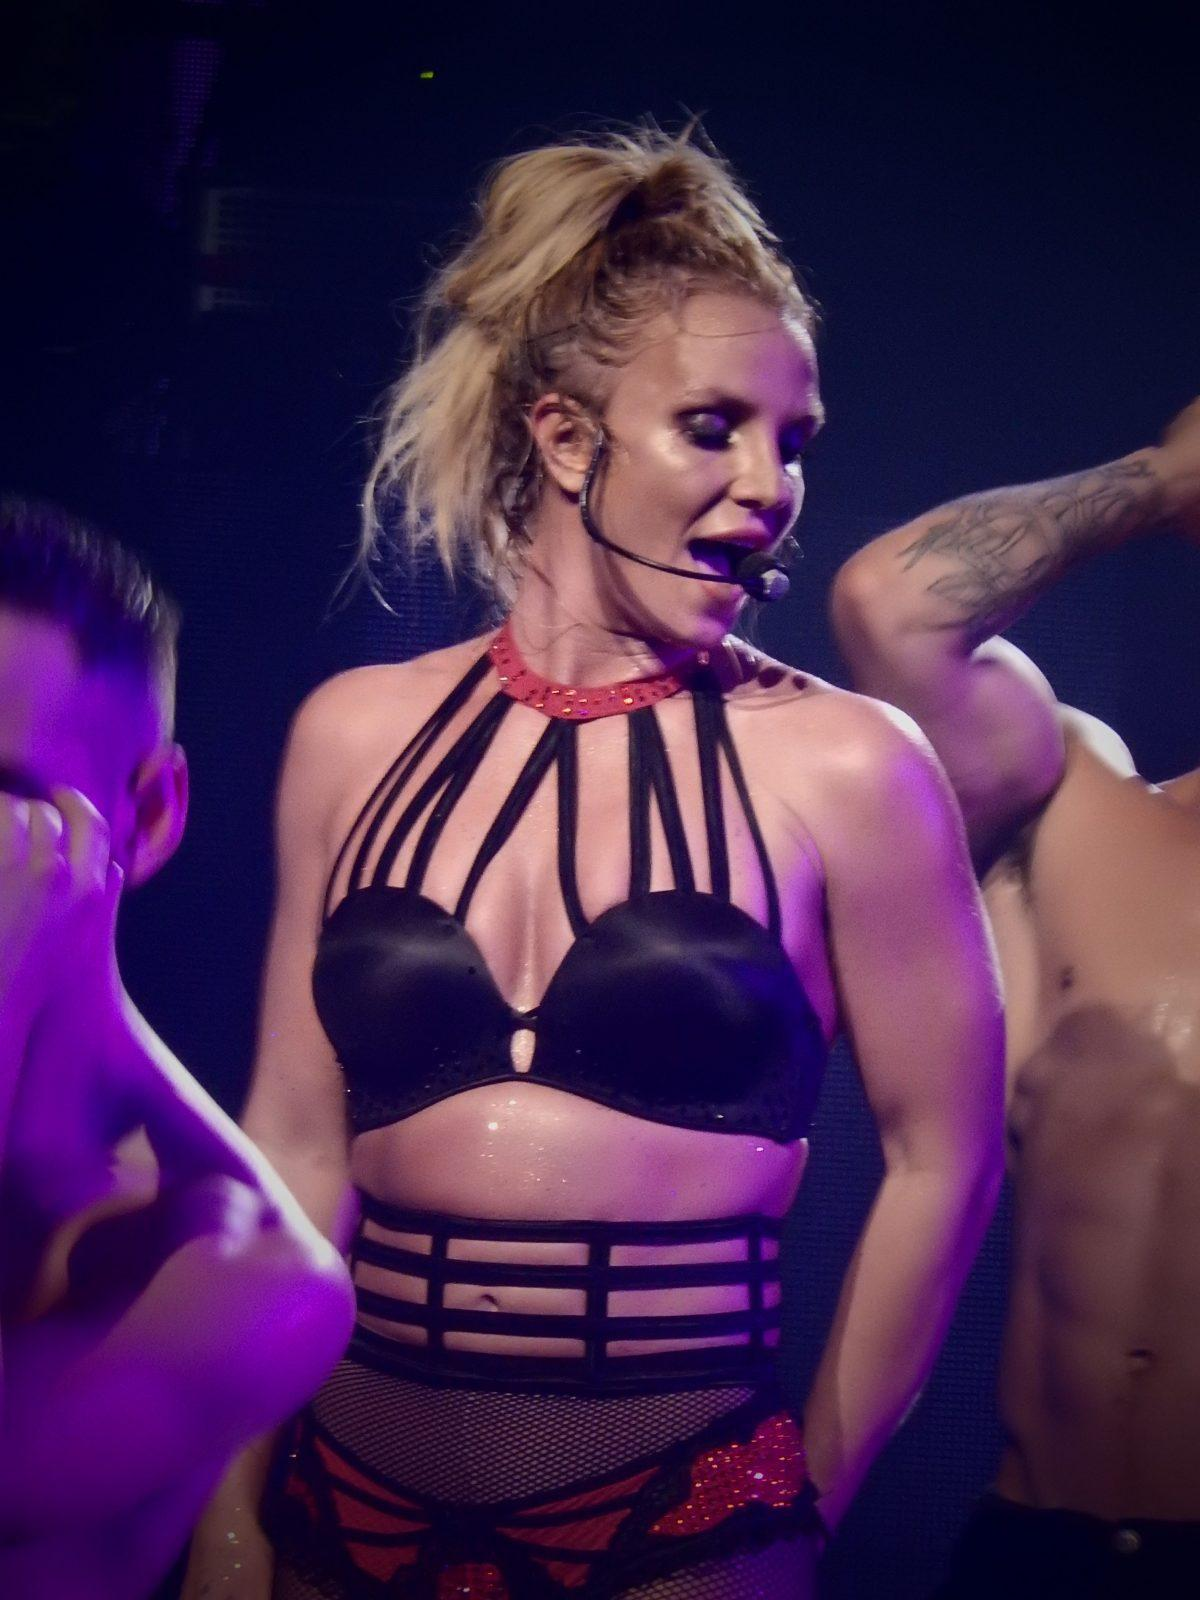 The Free Britney Movement